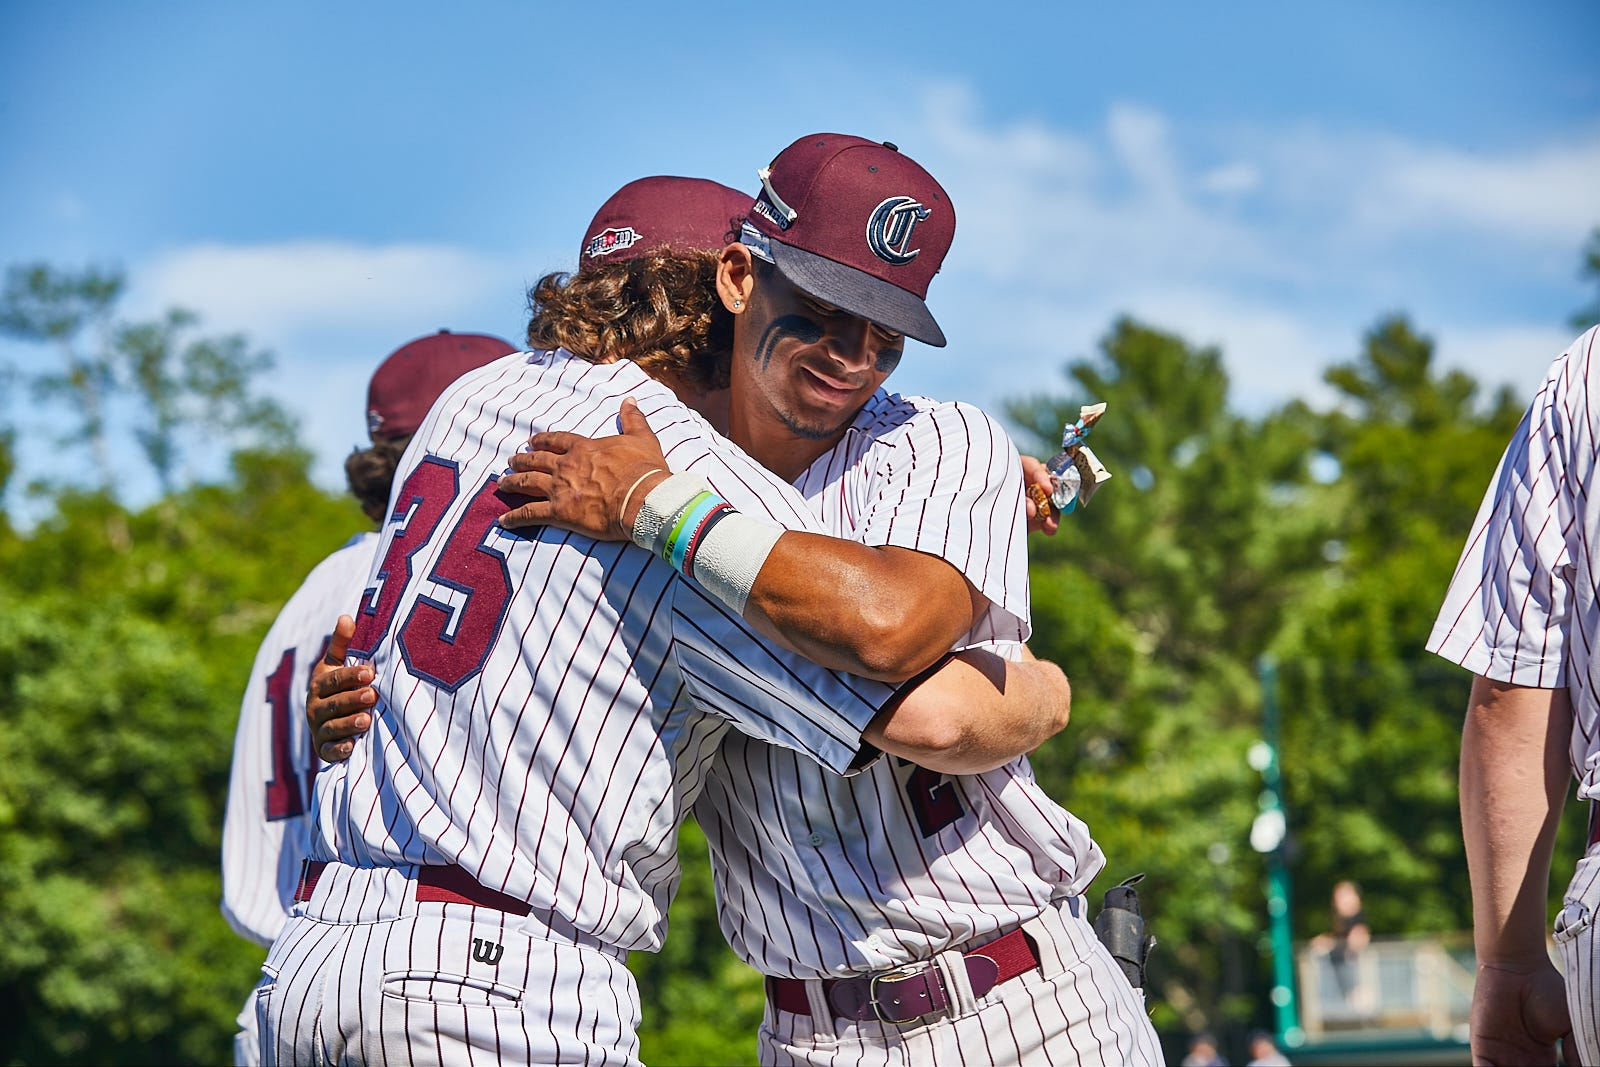 COTUIT - 06/20/21 -- Cotuit Kettleers, Alaska Abney, from Lawrenceville, GA, and Eric Brown, from Bossier City, LA, embrace before the start of the Cape League opener at Lowell Park against Wareham.